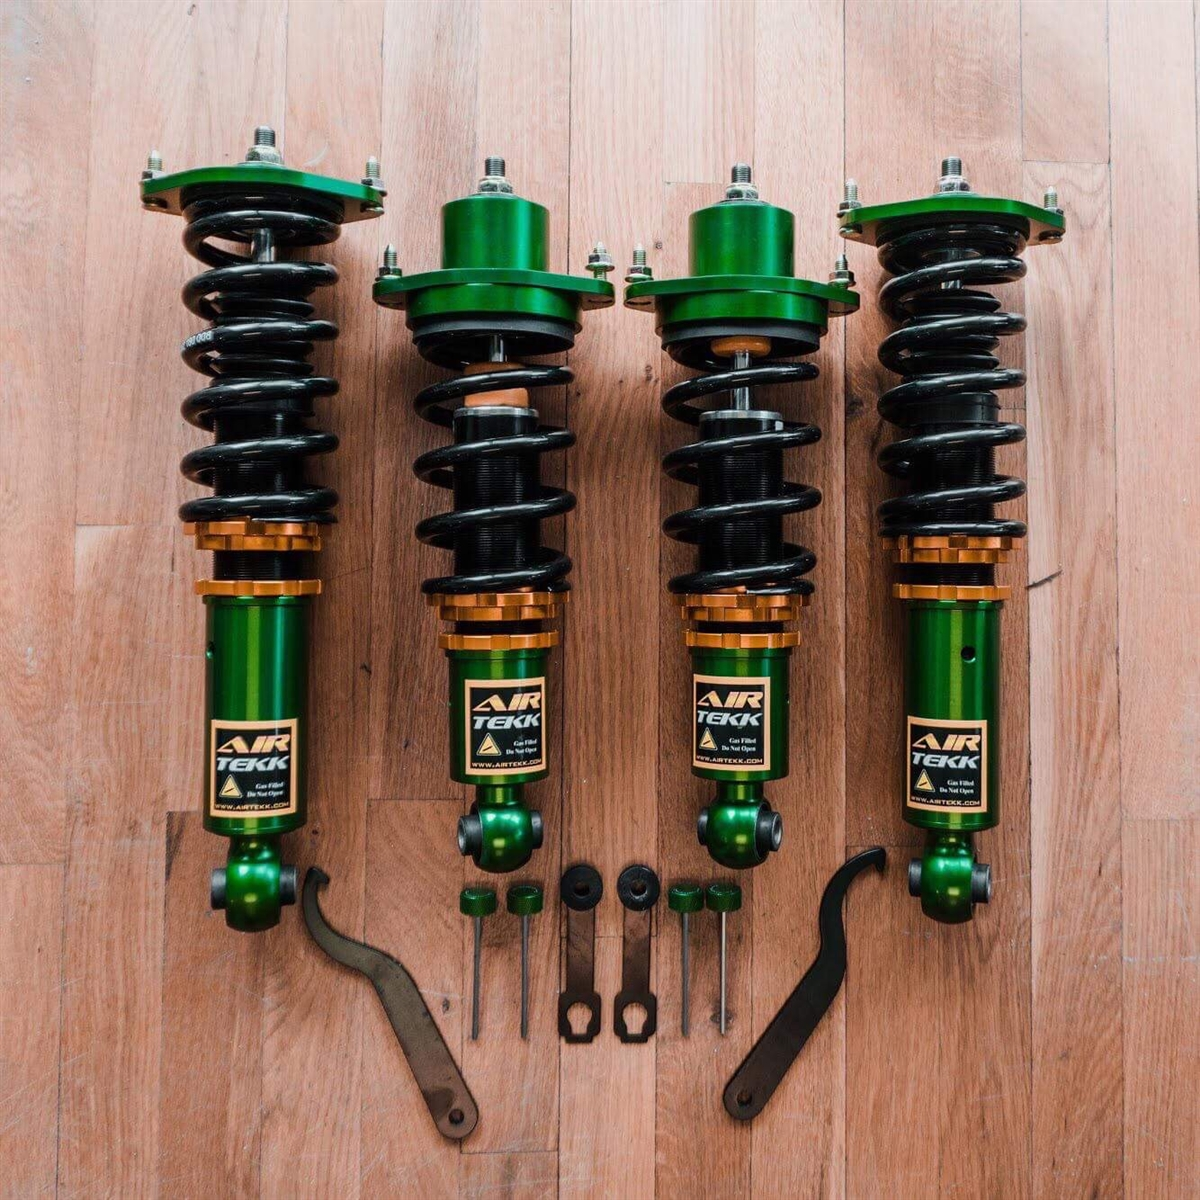 Sports Shock Absorbers Pair Of FRONT Peugeot 306 ALL MODELS 93-